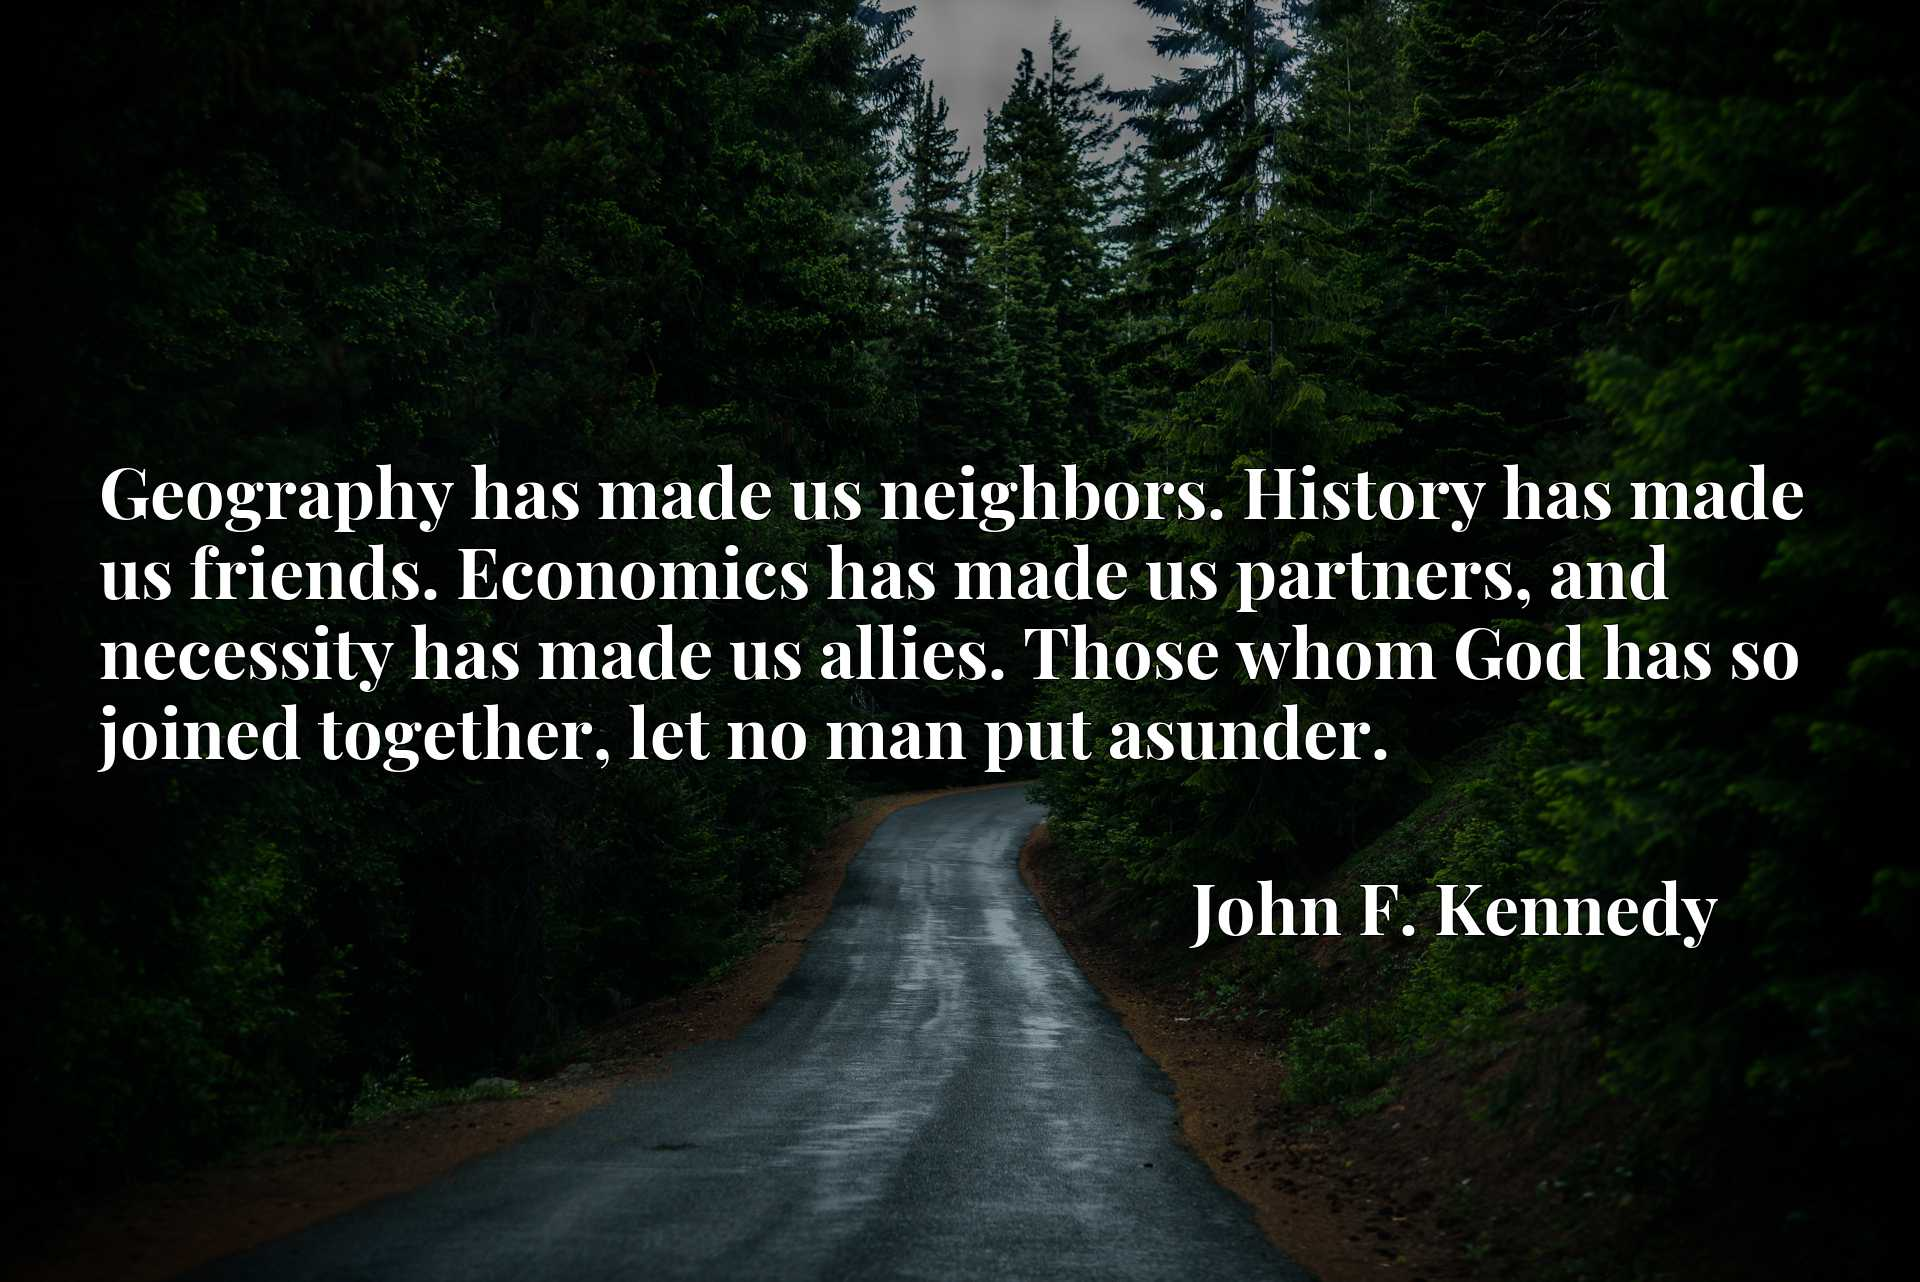 Geography has made us neighbors. History has made us friends. Economics has made us partners, and necessity has made us allies. Those whom God has so joined together, let no man put asunder.